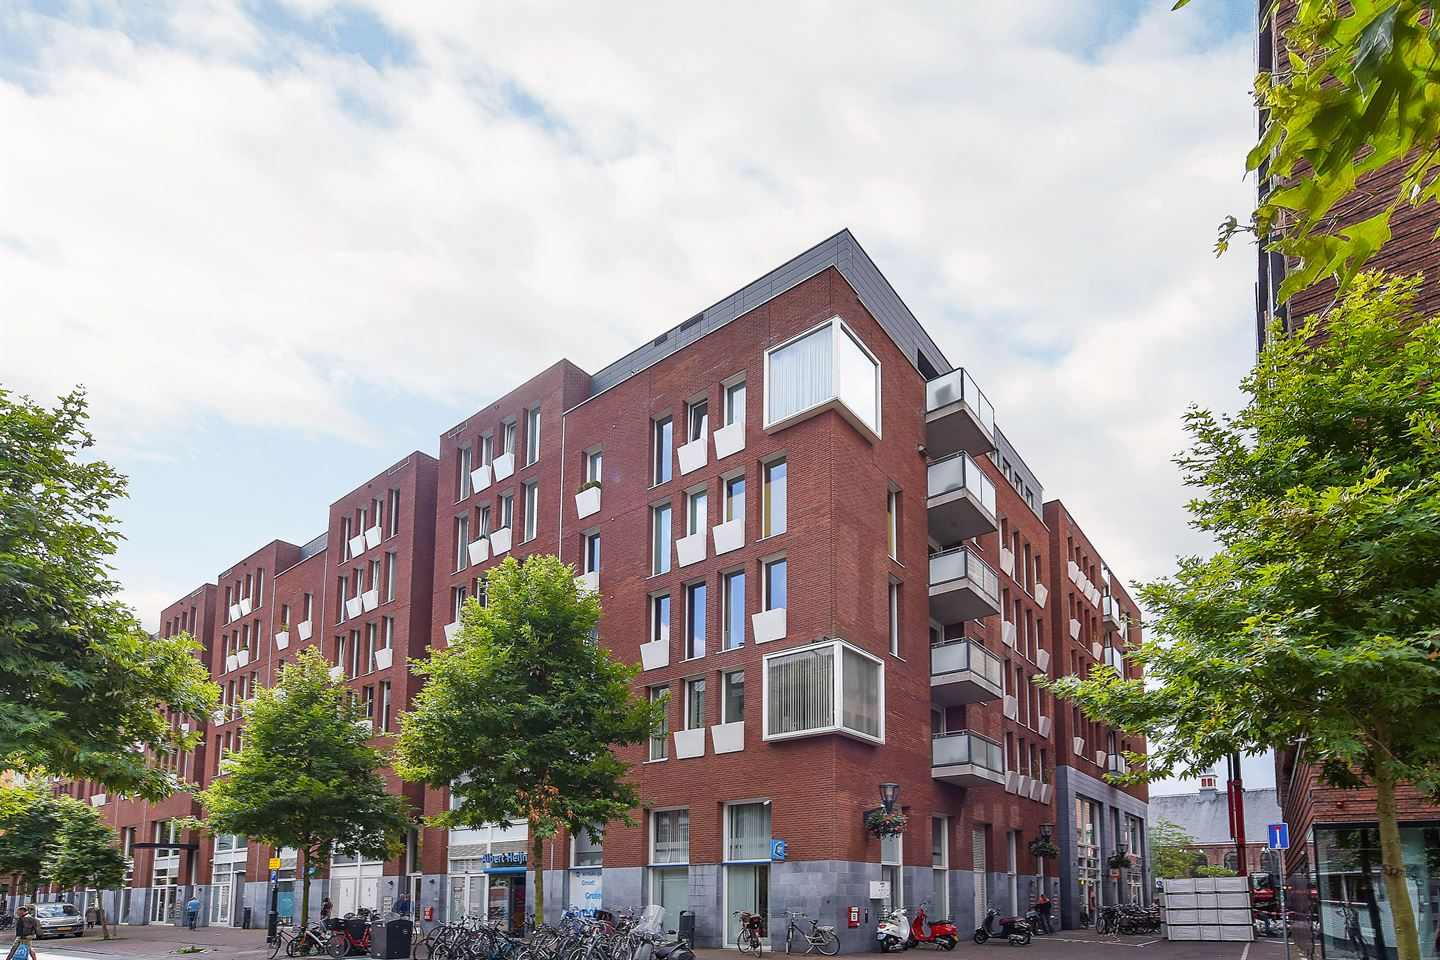 Appartement te koop jacobstraat 51 2019 wc haarlem funda for Funda haarlem centrum